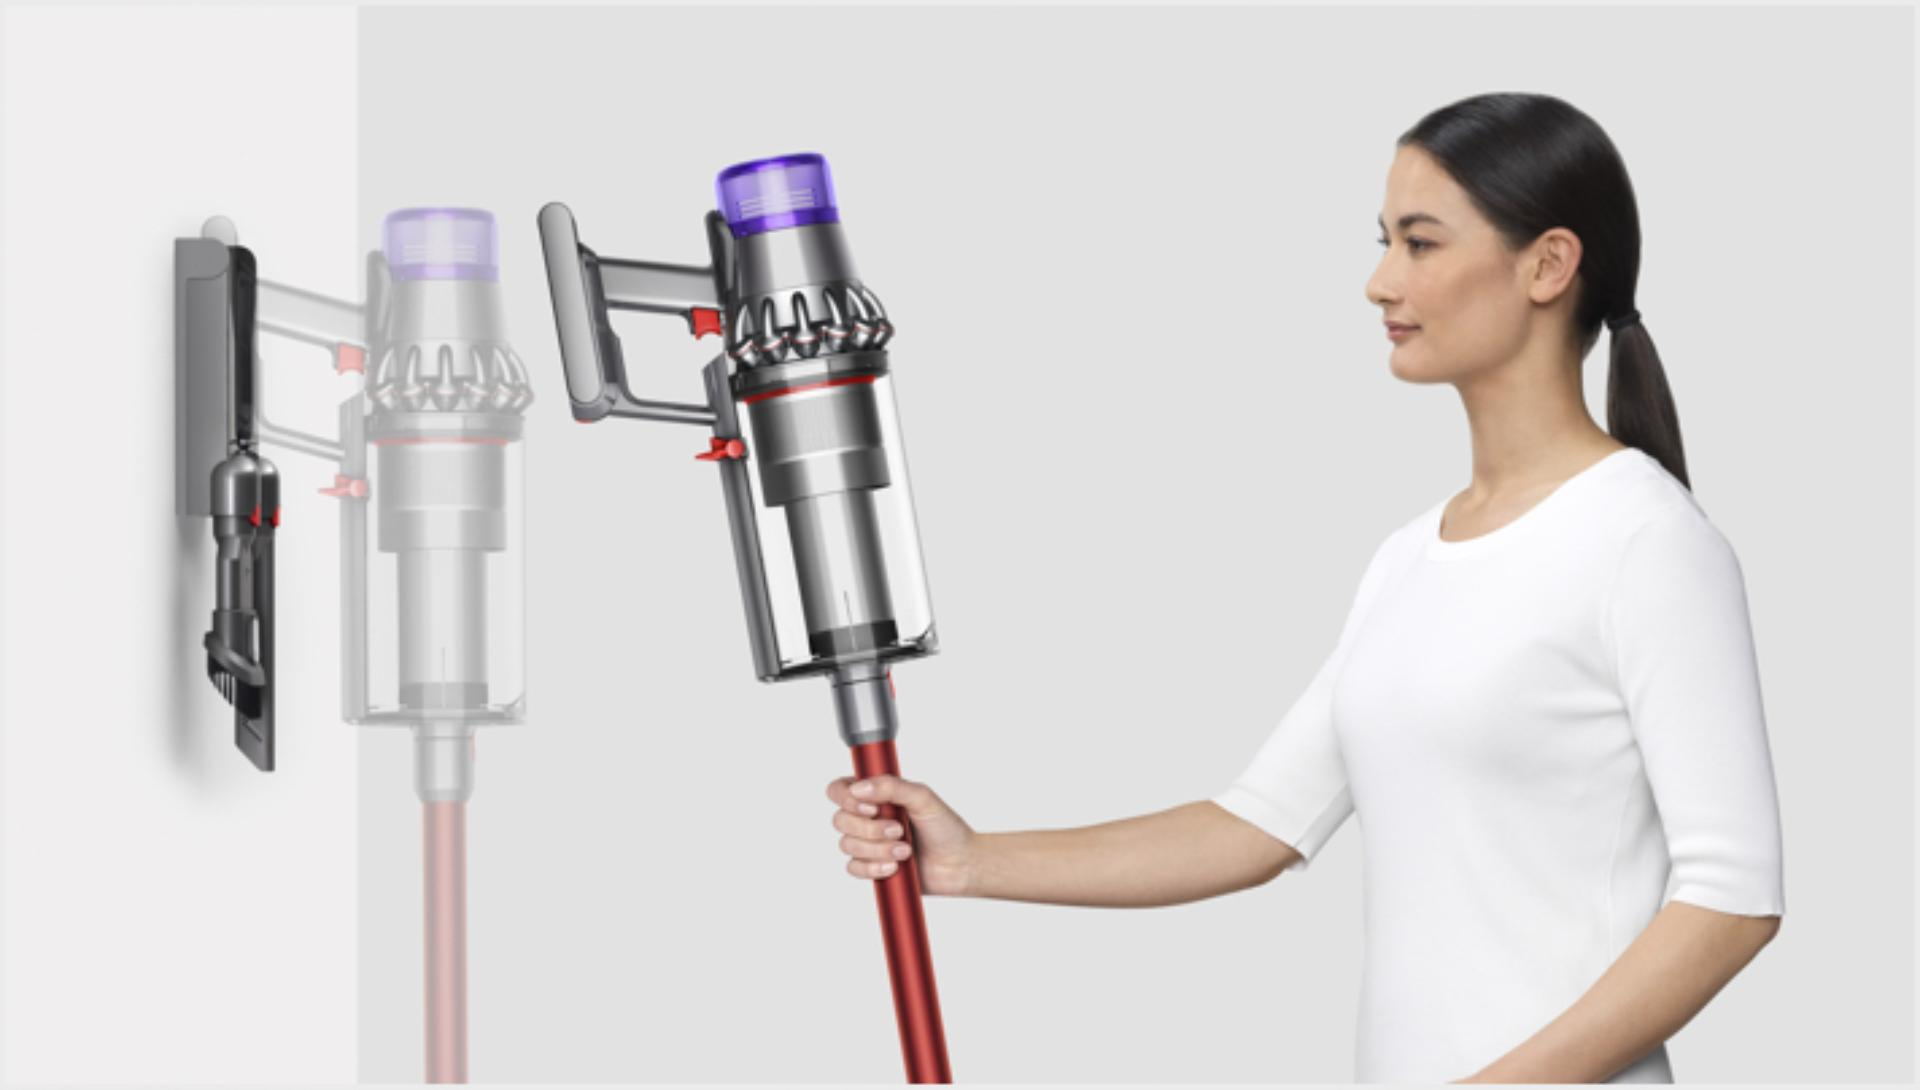 Woman placing Dyson V11 Outsize vacuum into wall charging dock